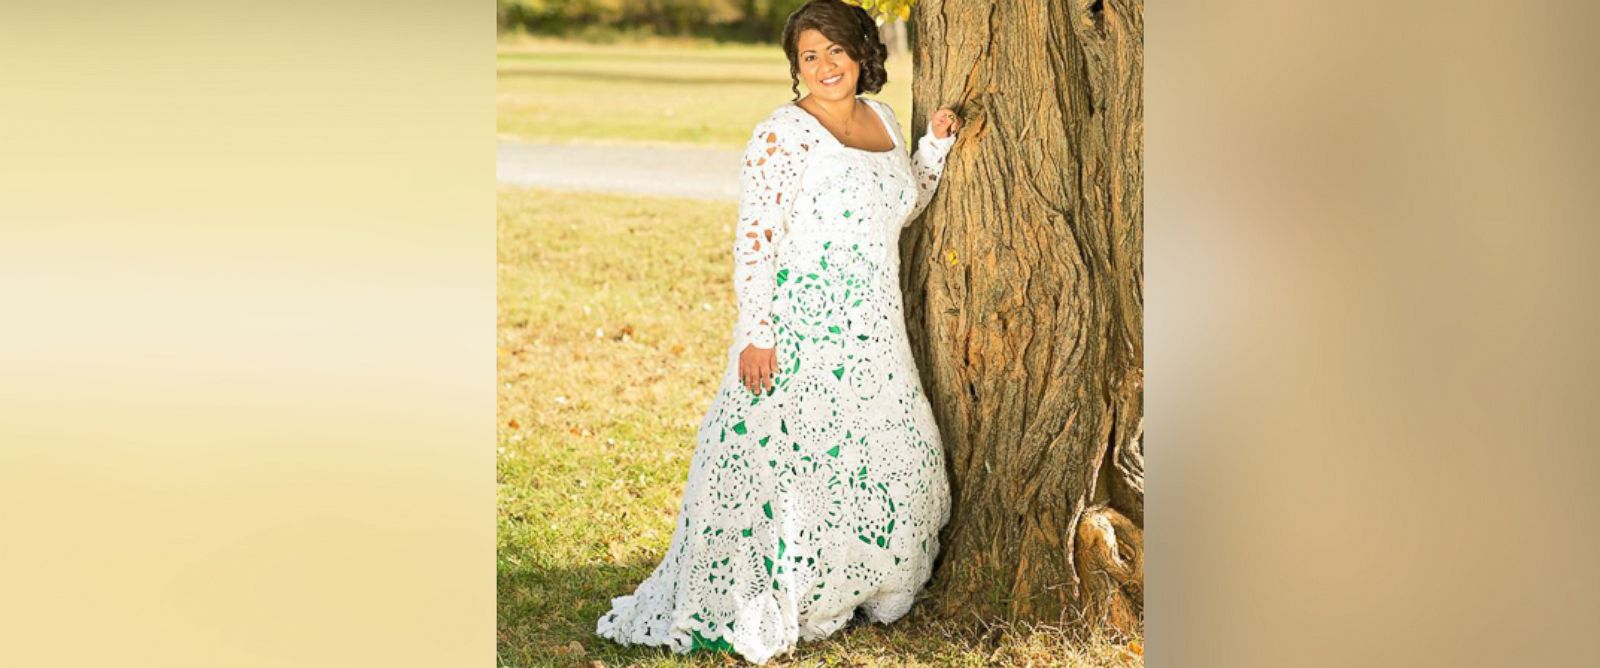 story id crocheted wedding dress PHOTO Abbey Ramirez Bodley spent eight months and 70 crocheting her gorgeous wedding gown